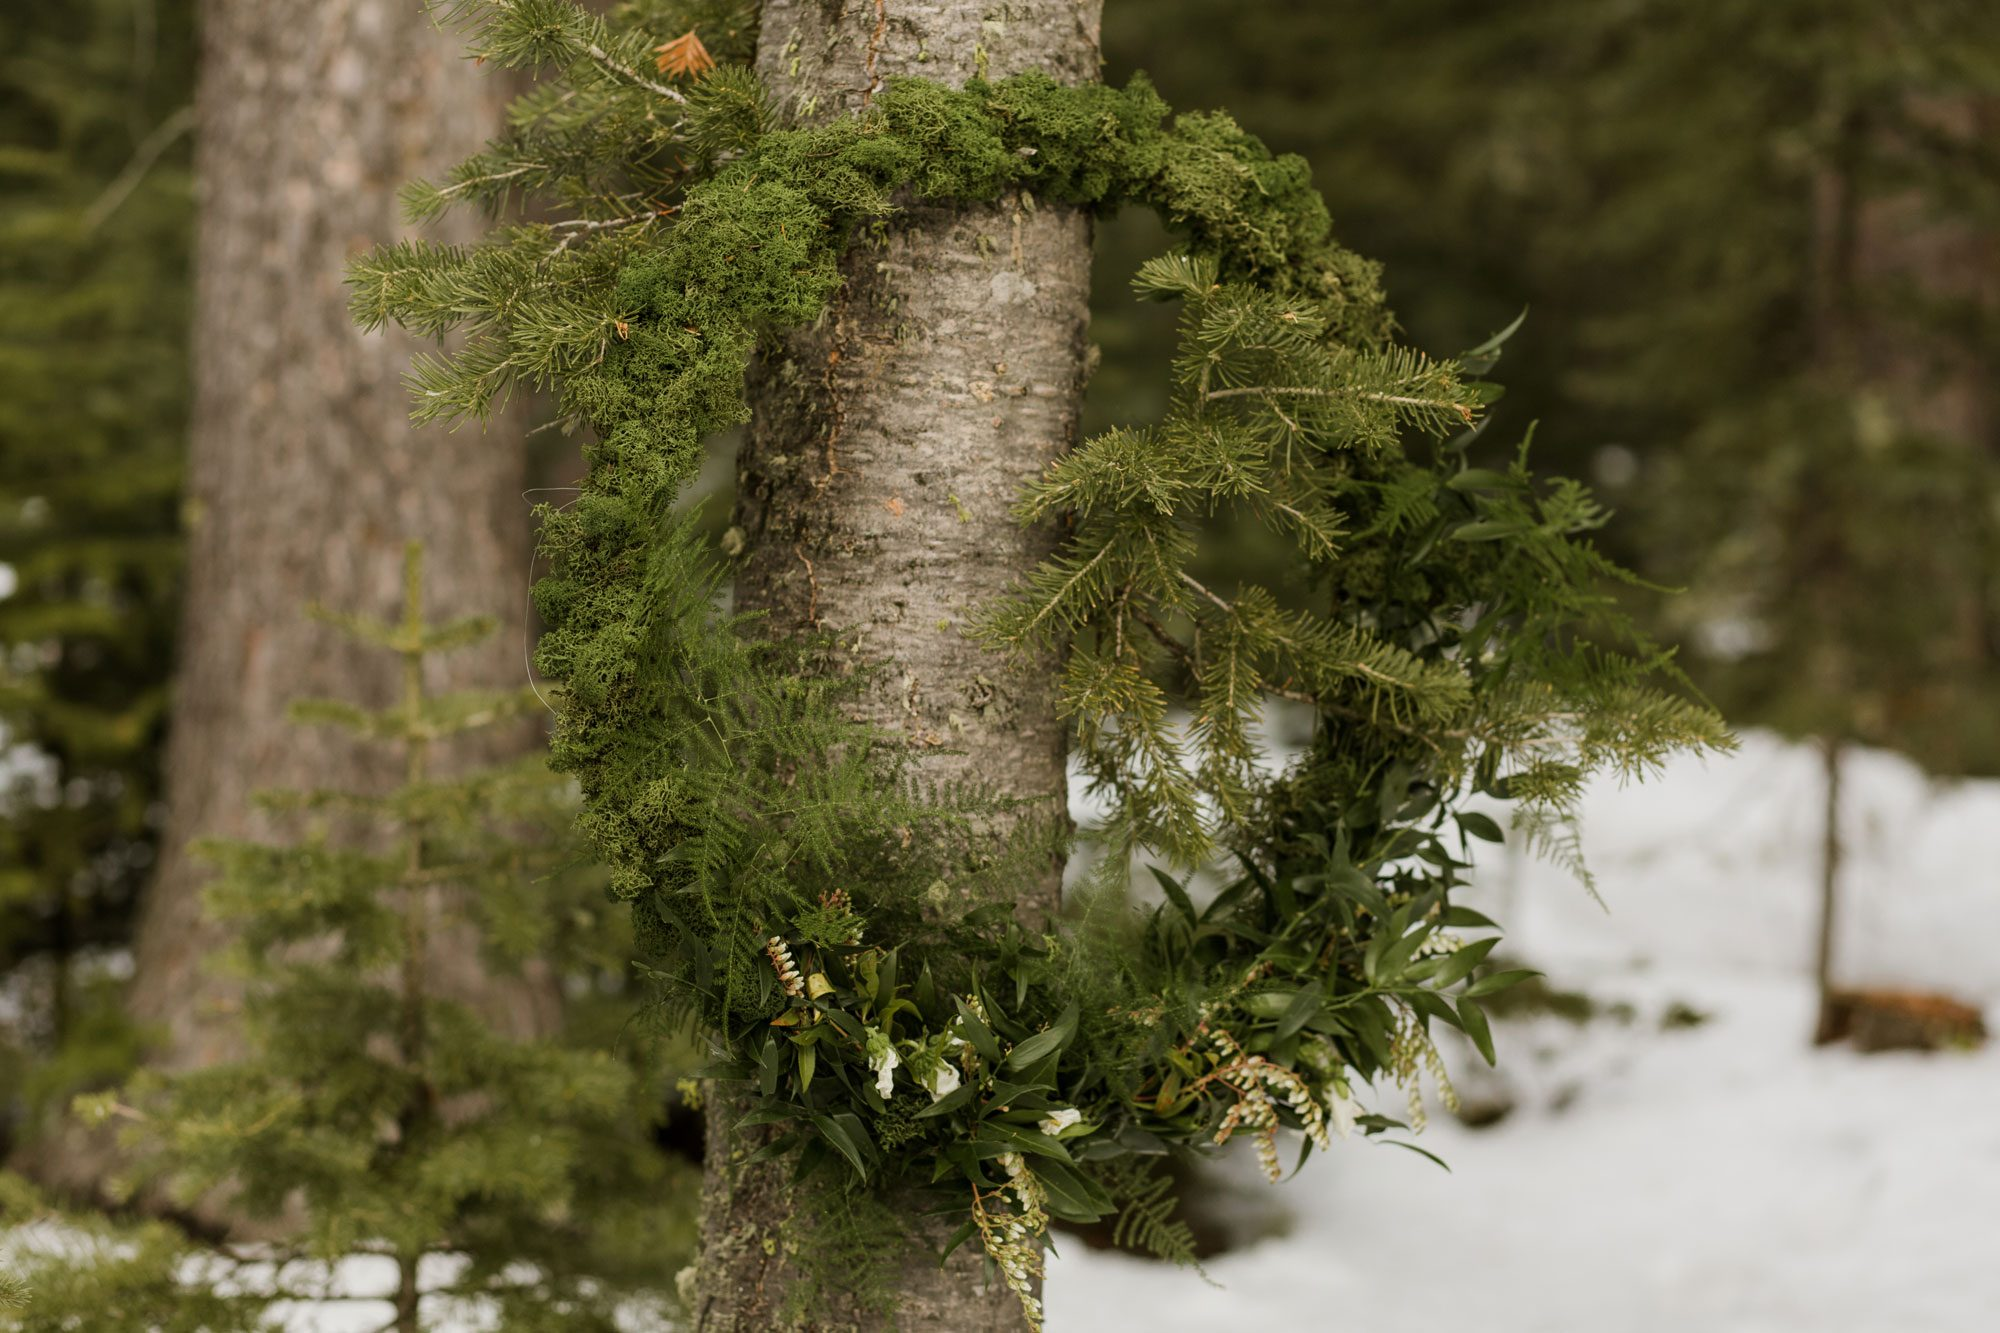 Floral wreath in the snow